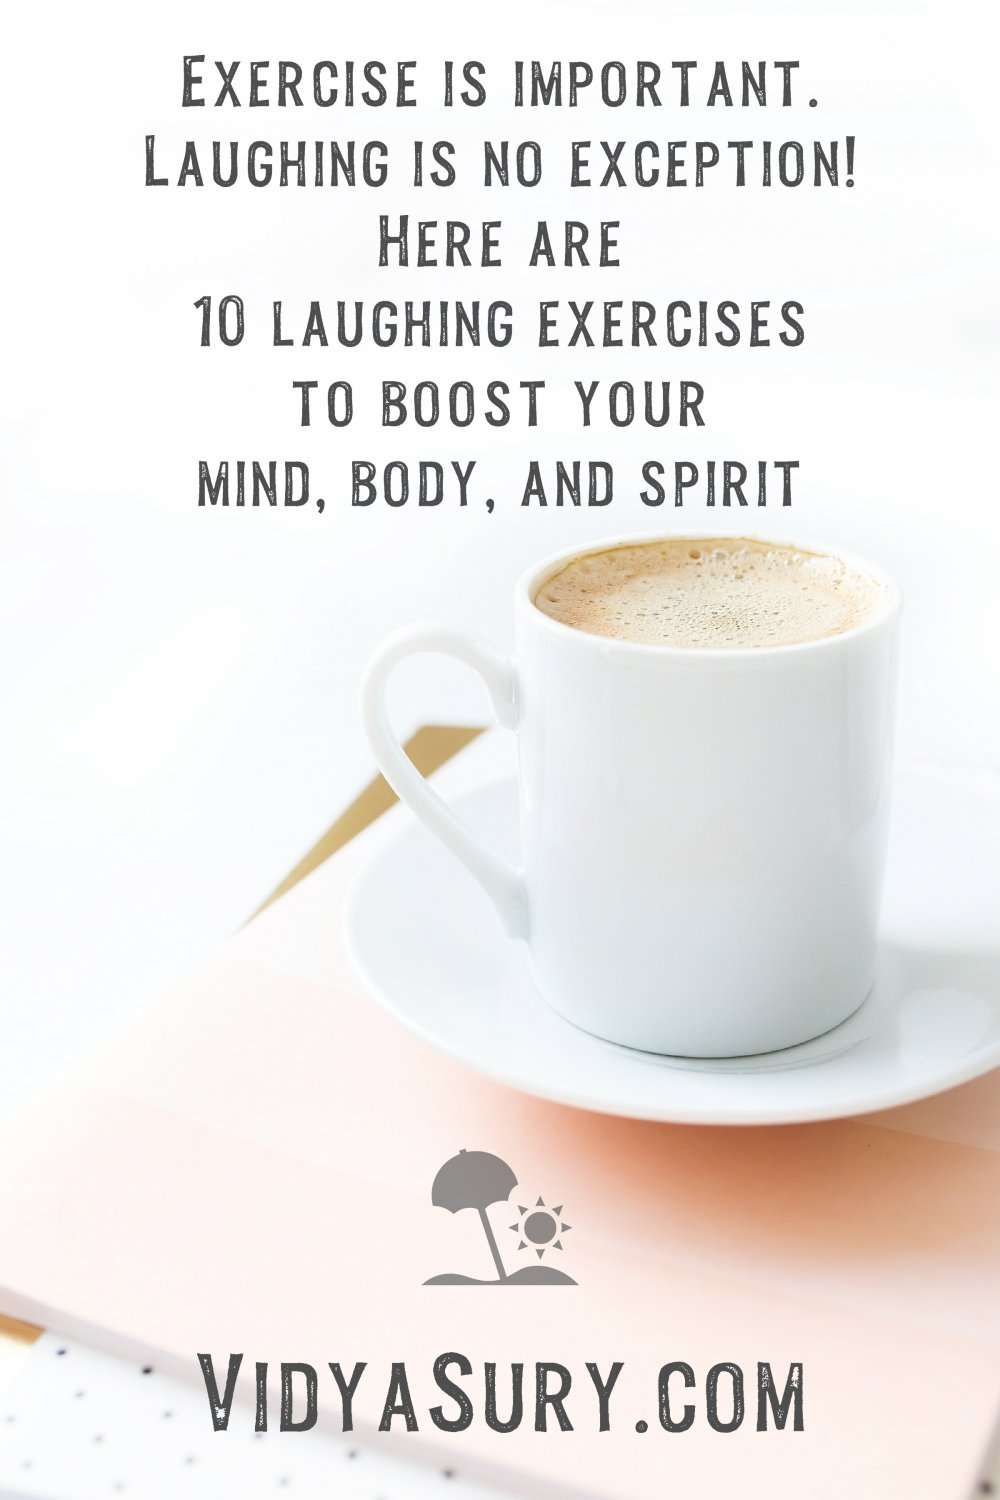 Exercise is important 10 laughing exercises